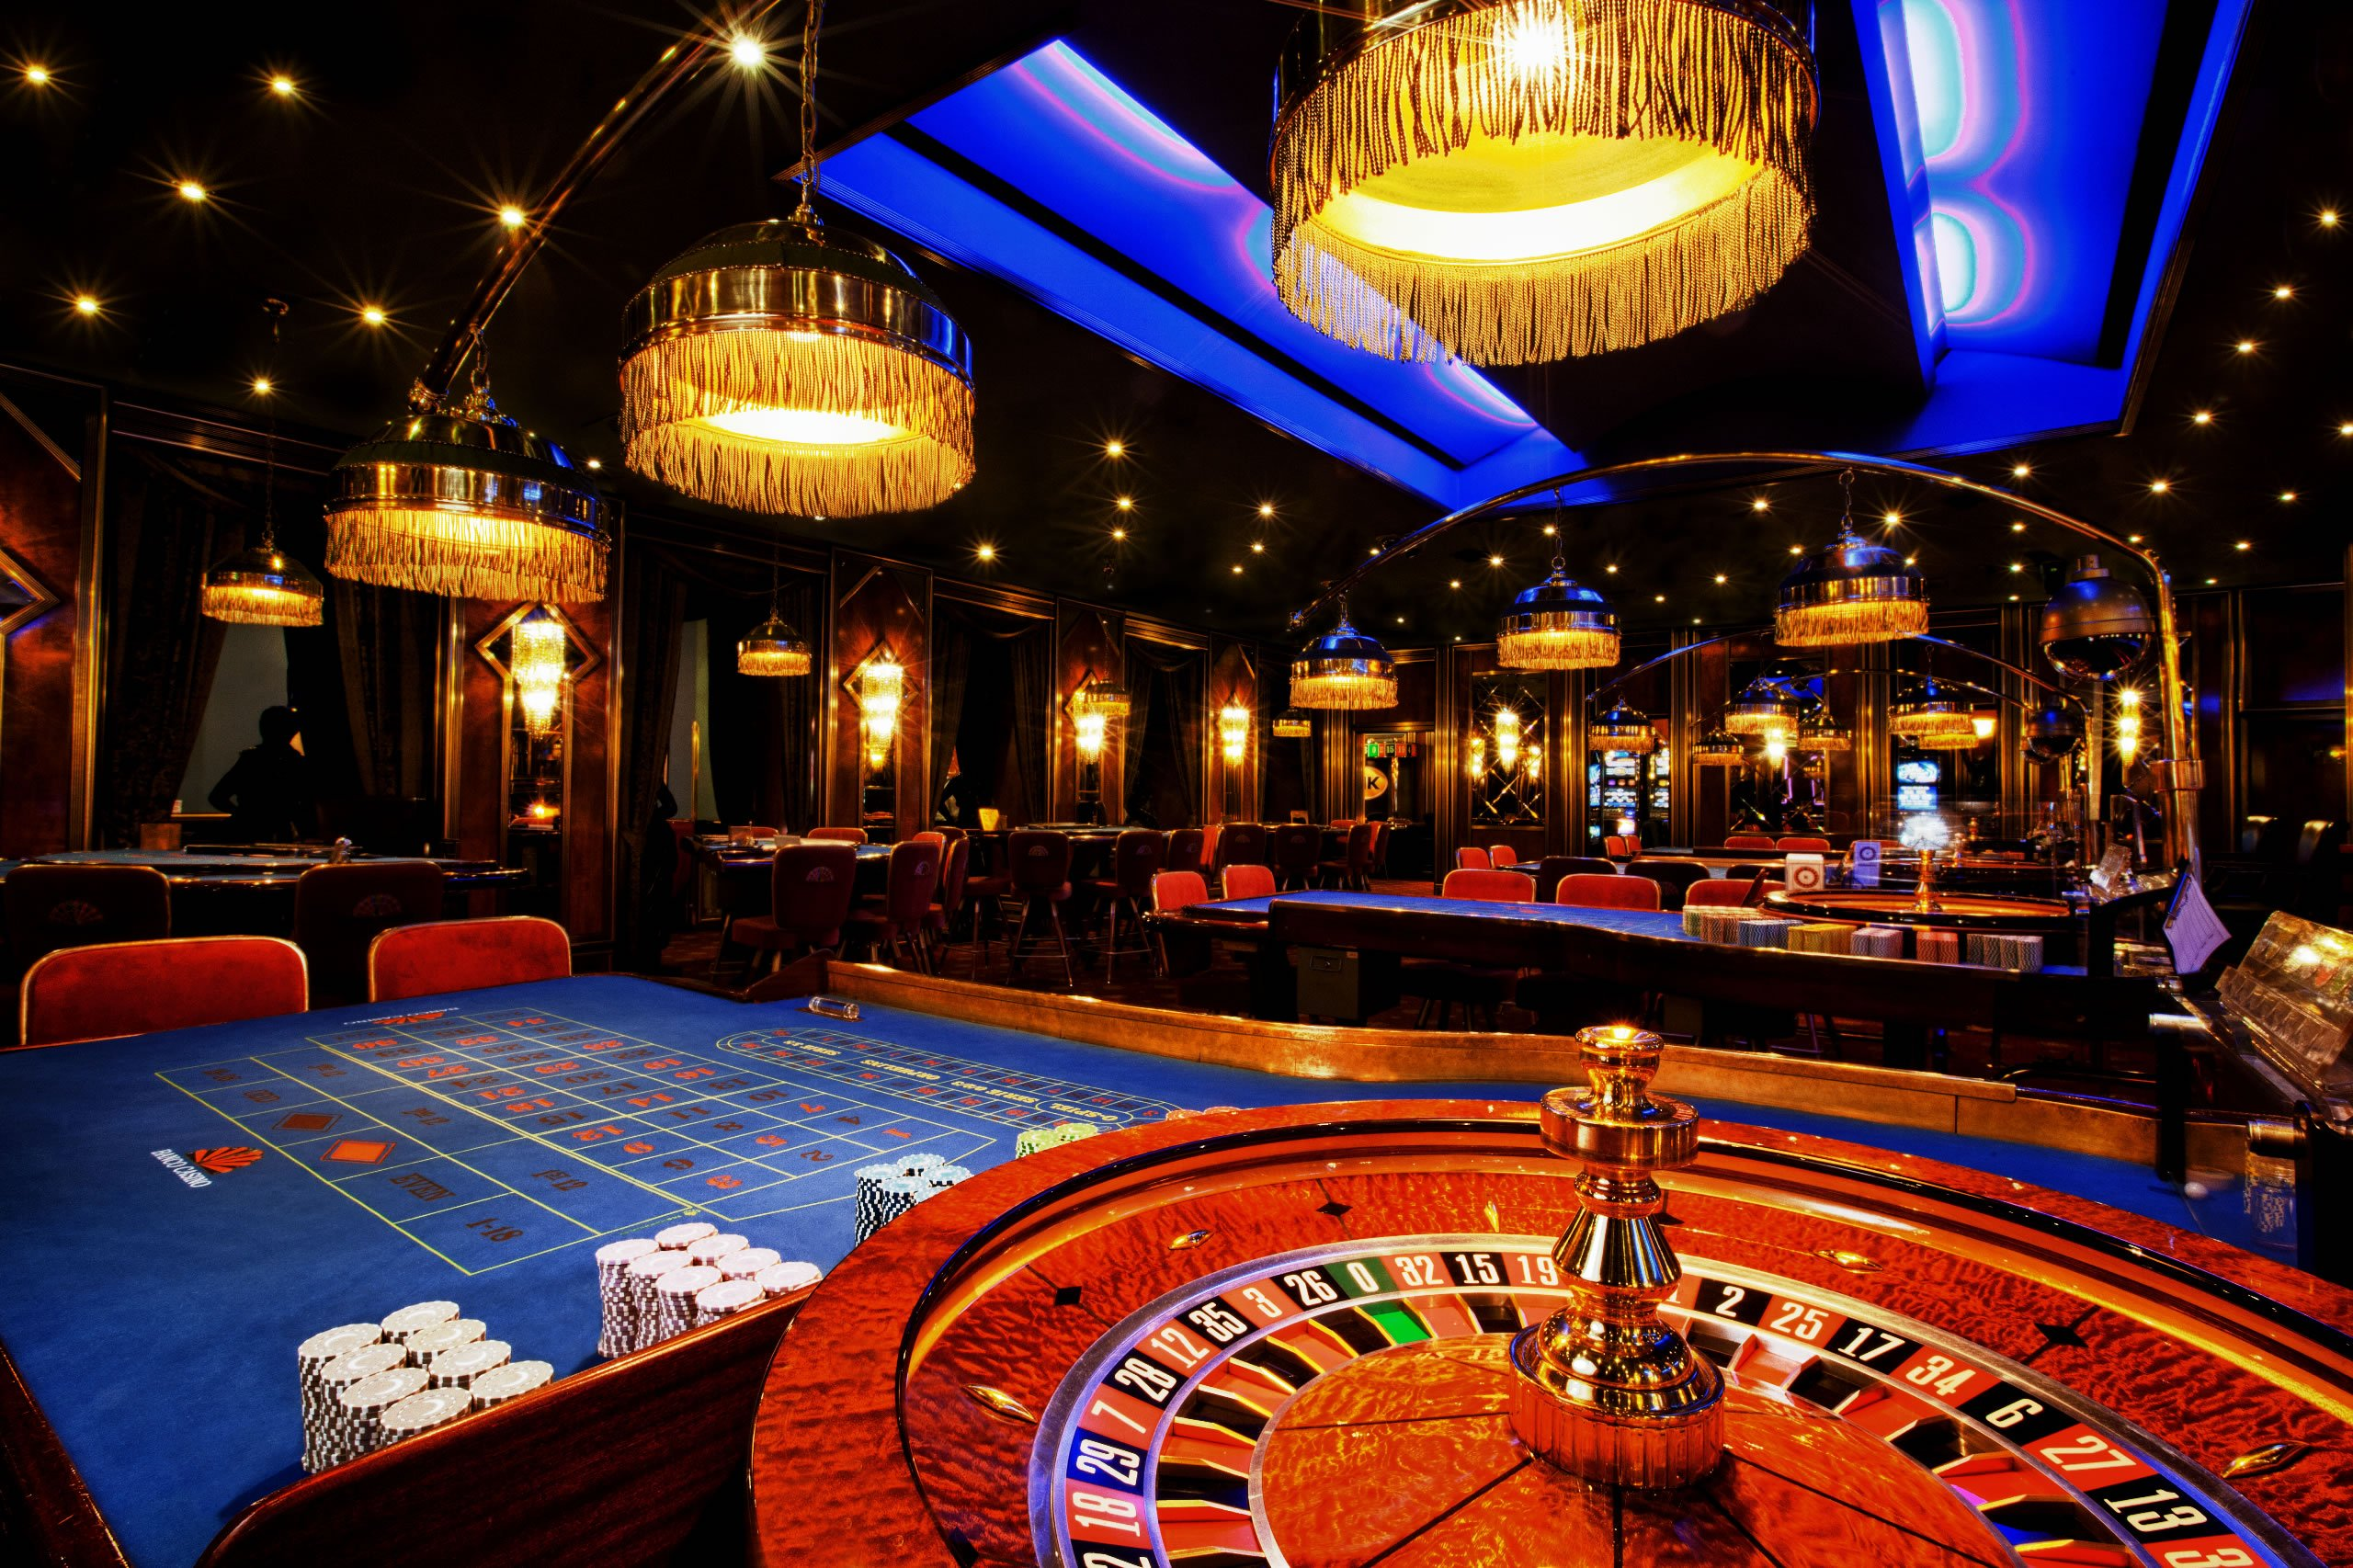 The Most Popular Online Casino